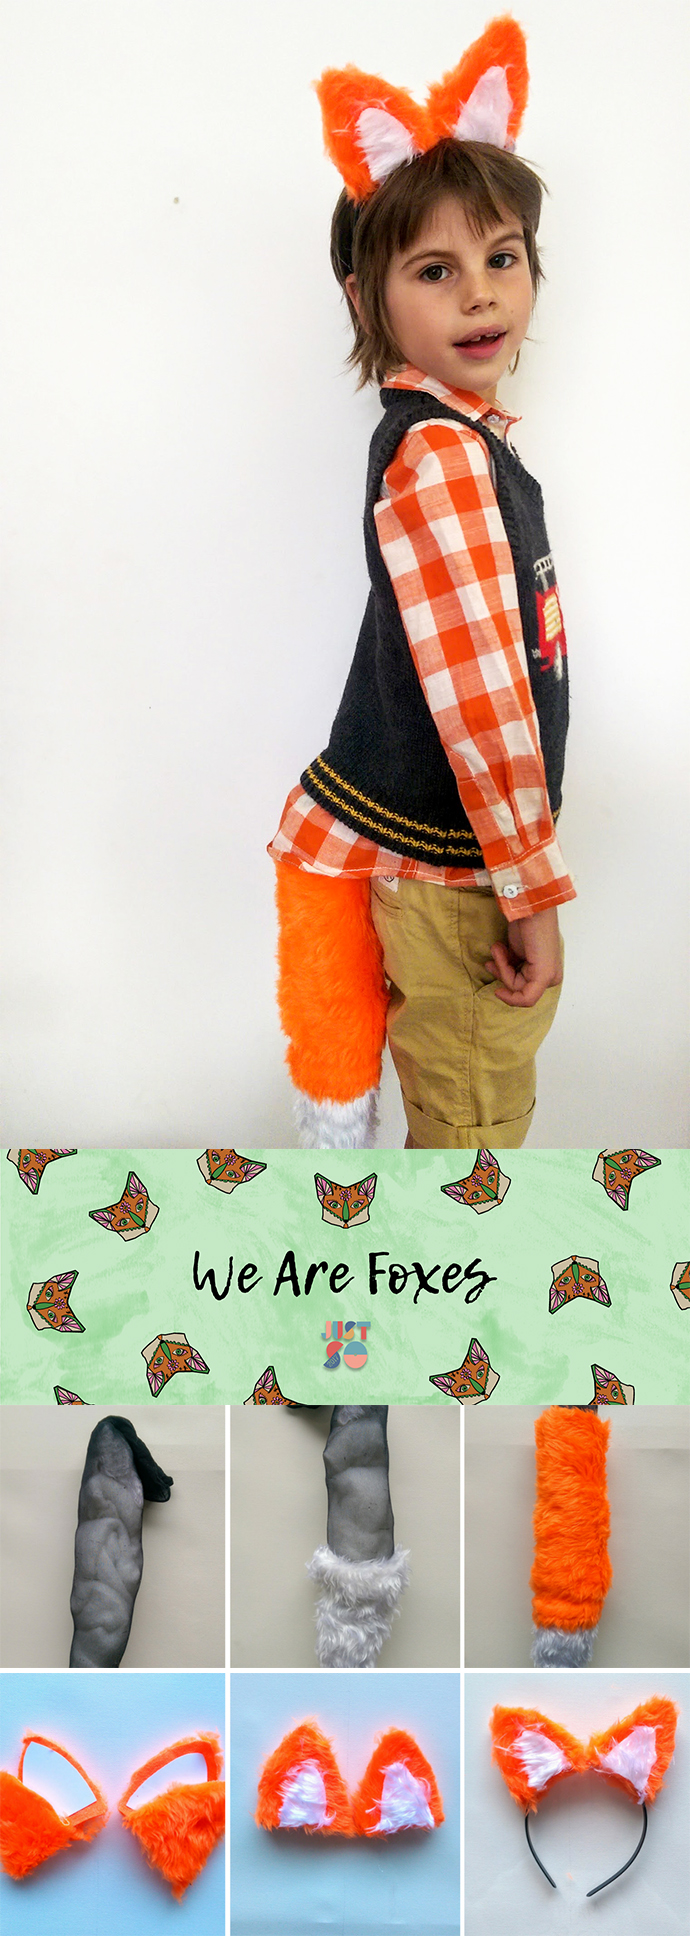 Easy no-sew fox costume | Growing Spaces